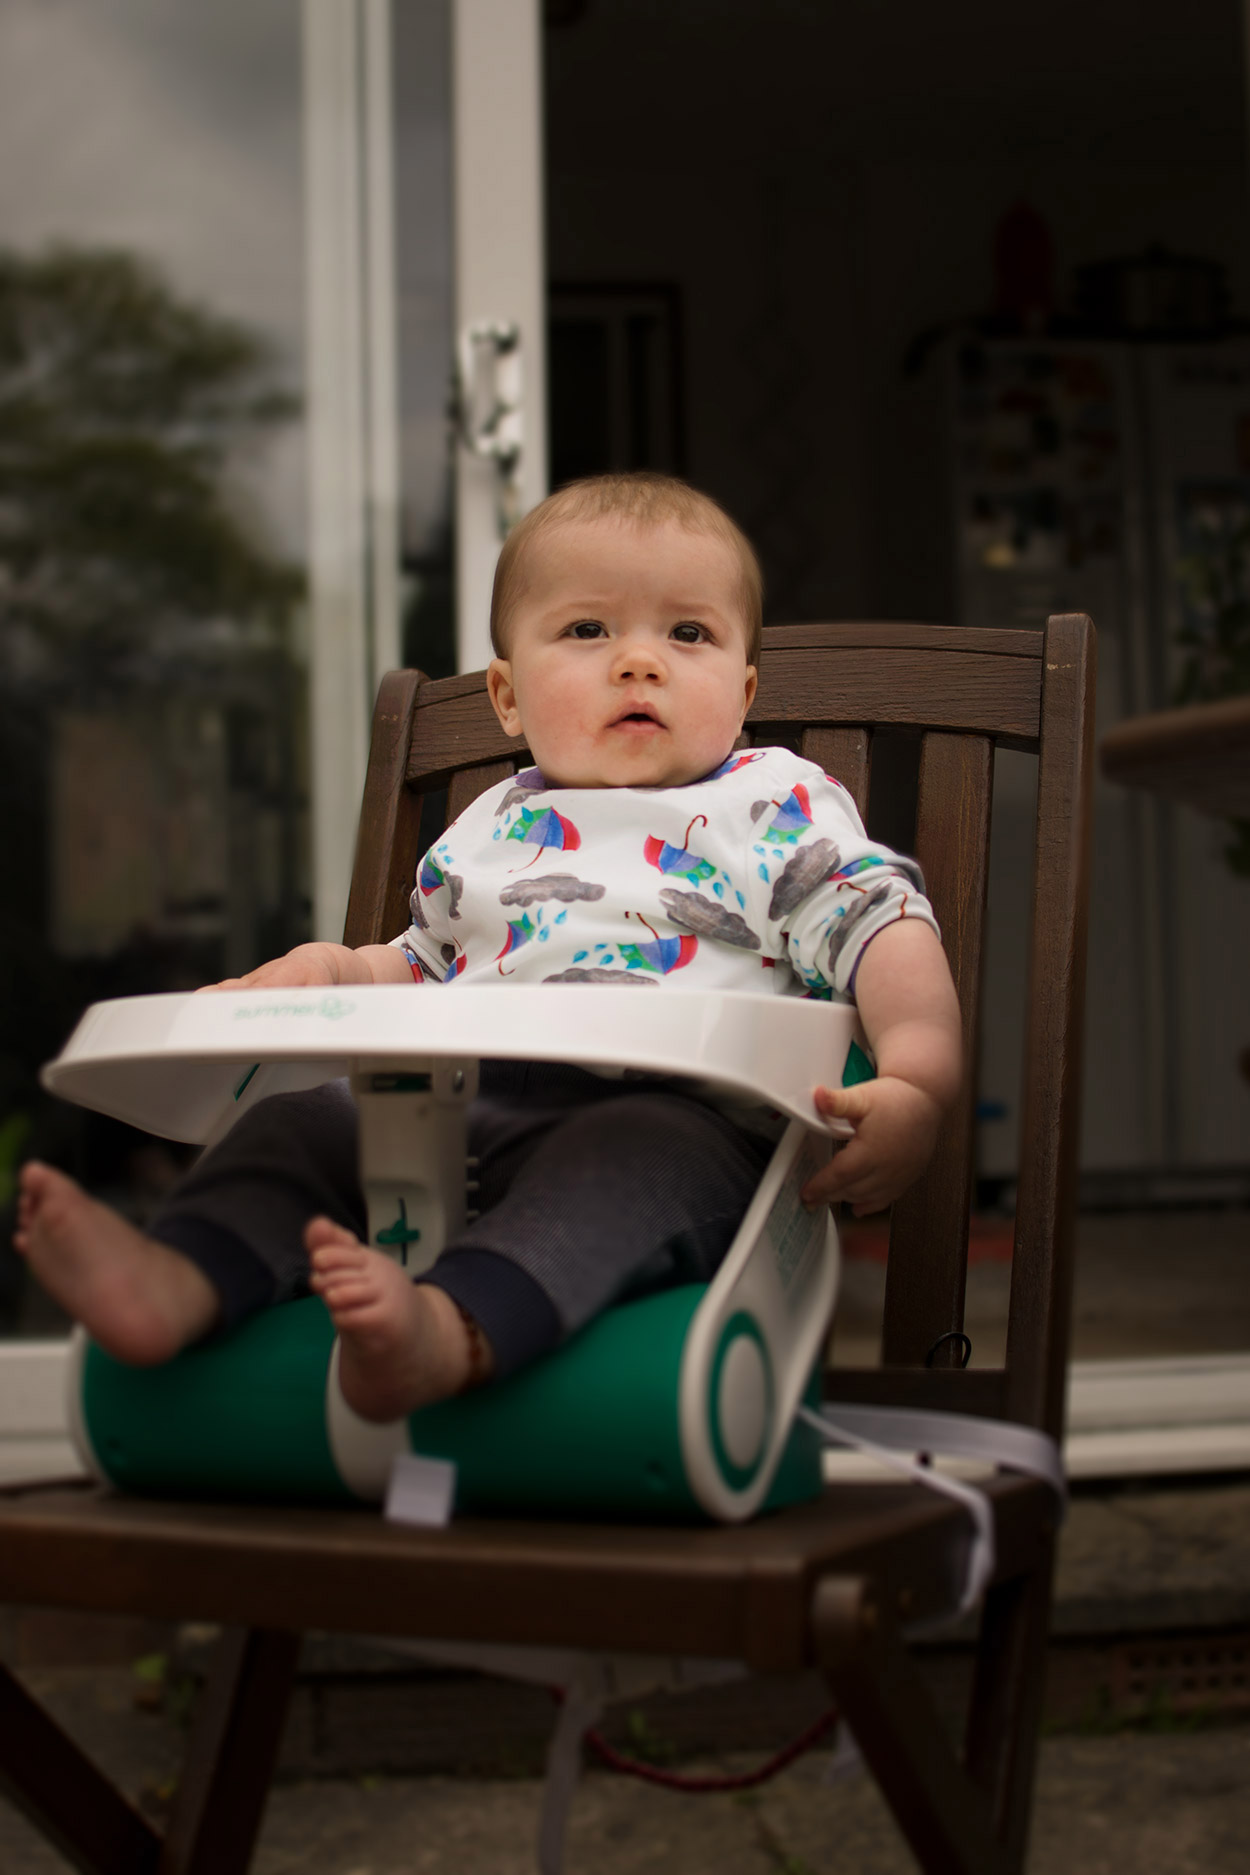 portable high chair booster adirondack and ottoman set review summer travel seat hello archie 9 month old baby boy sitting in his